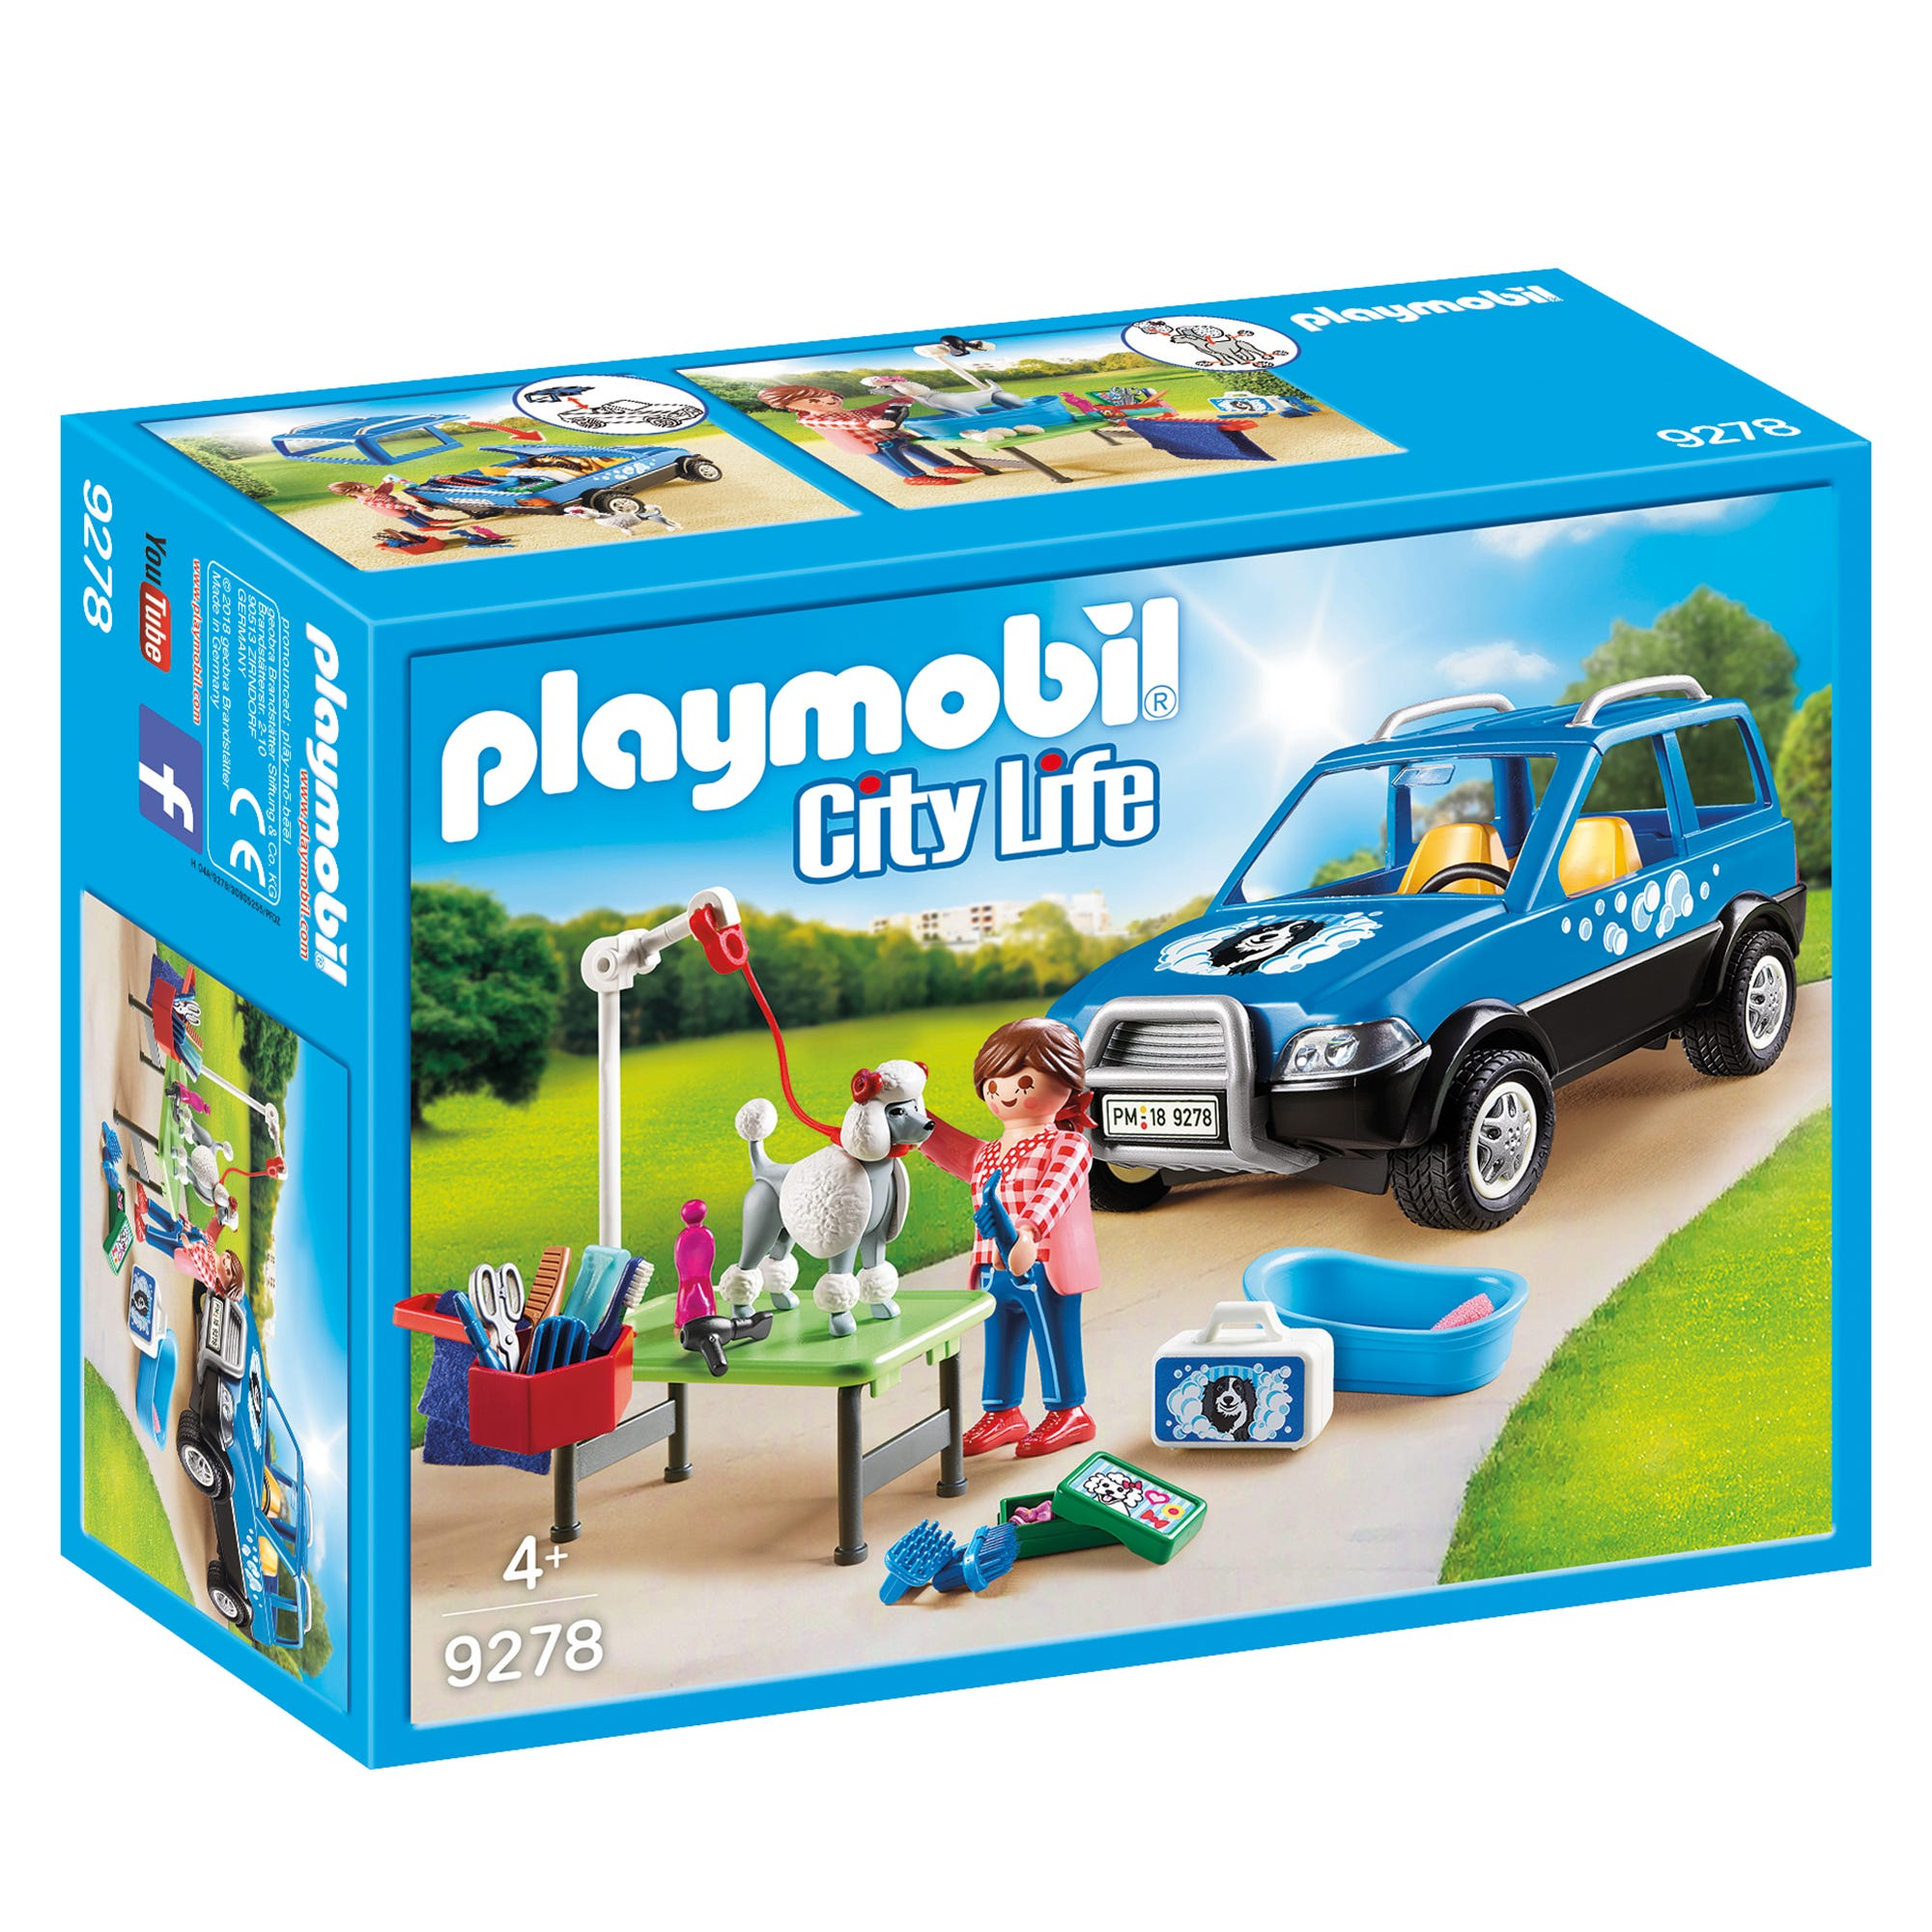 Playmobil City Life Mobile Pet Groomer 9278